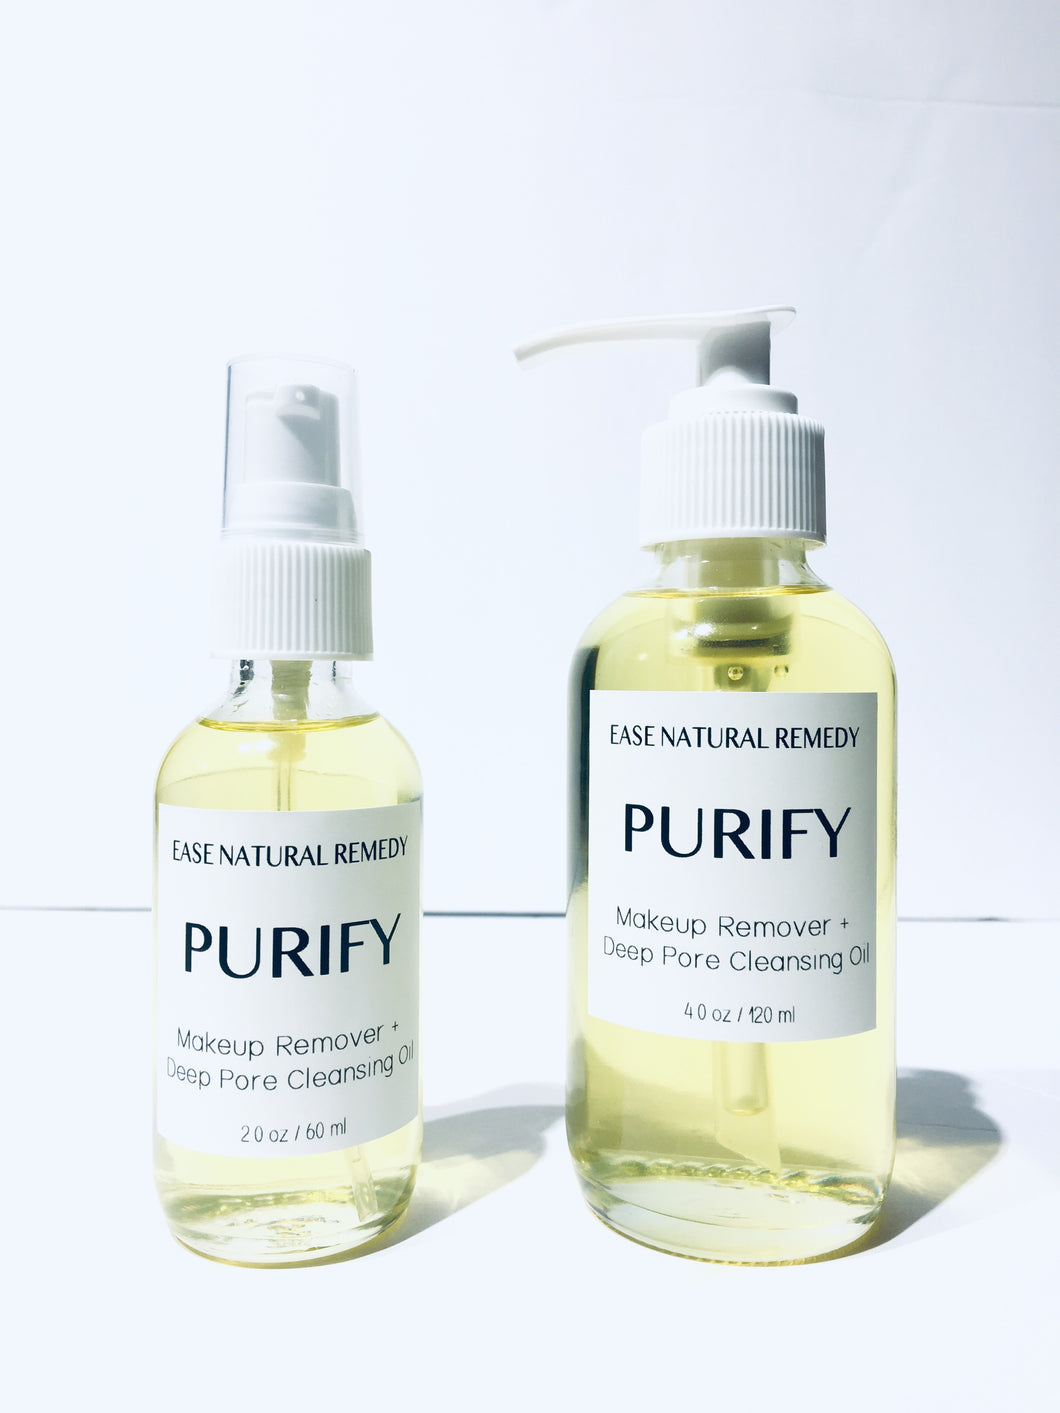 PURIFY - 100% Organic Makeup Remover + Deep Pore Cleansing Oil (Dry Skin)